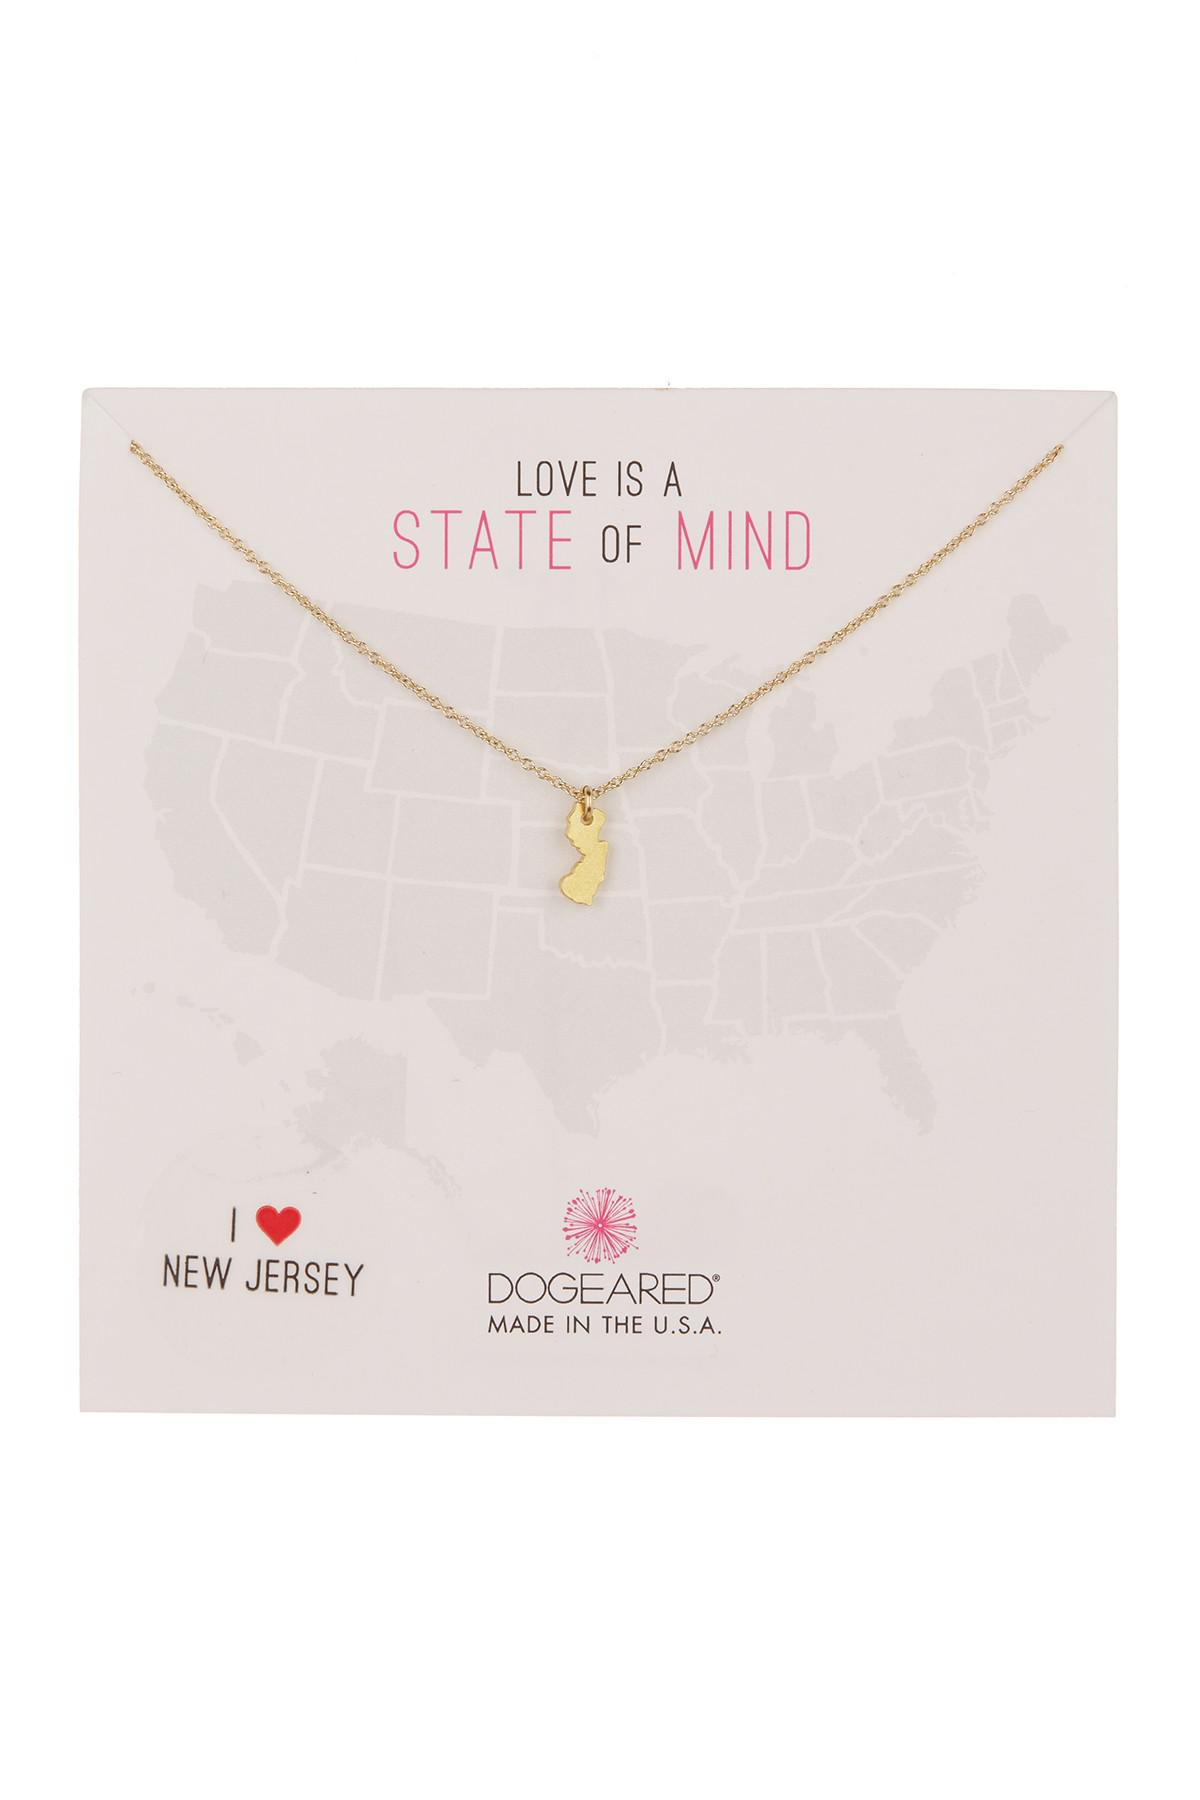 Lyst dogeared state of mind new jersey pendant necklace in metallic dogeared womens metallic state of mind new jersey pendant necklace aloadofball Image collections